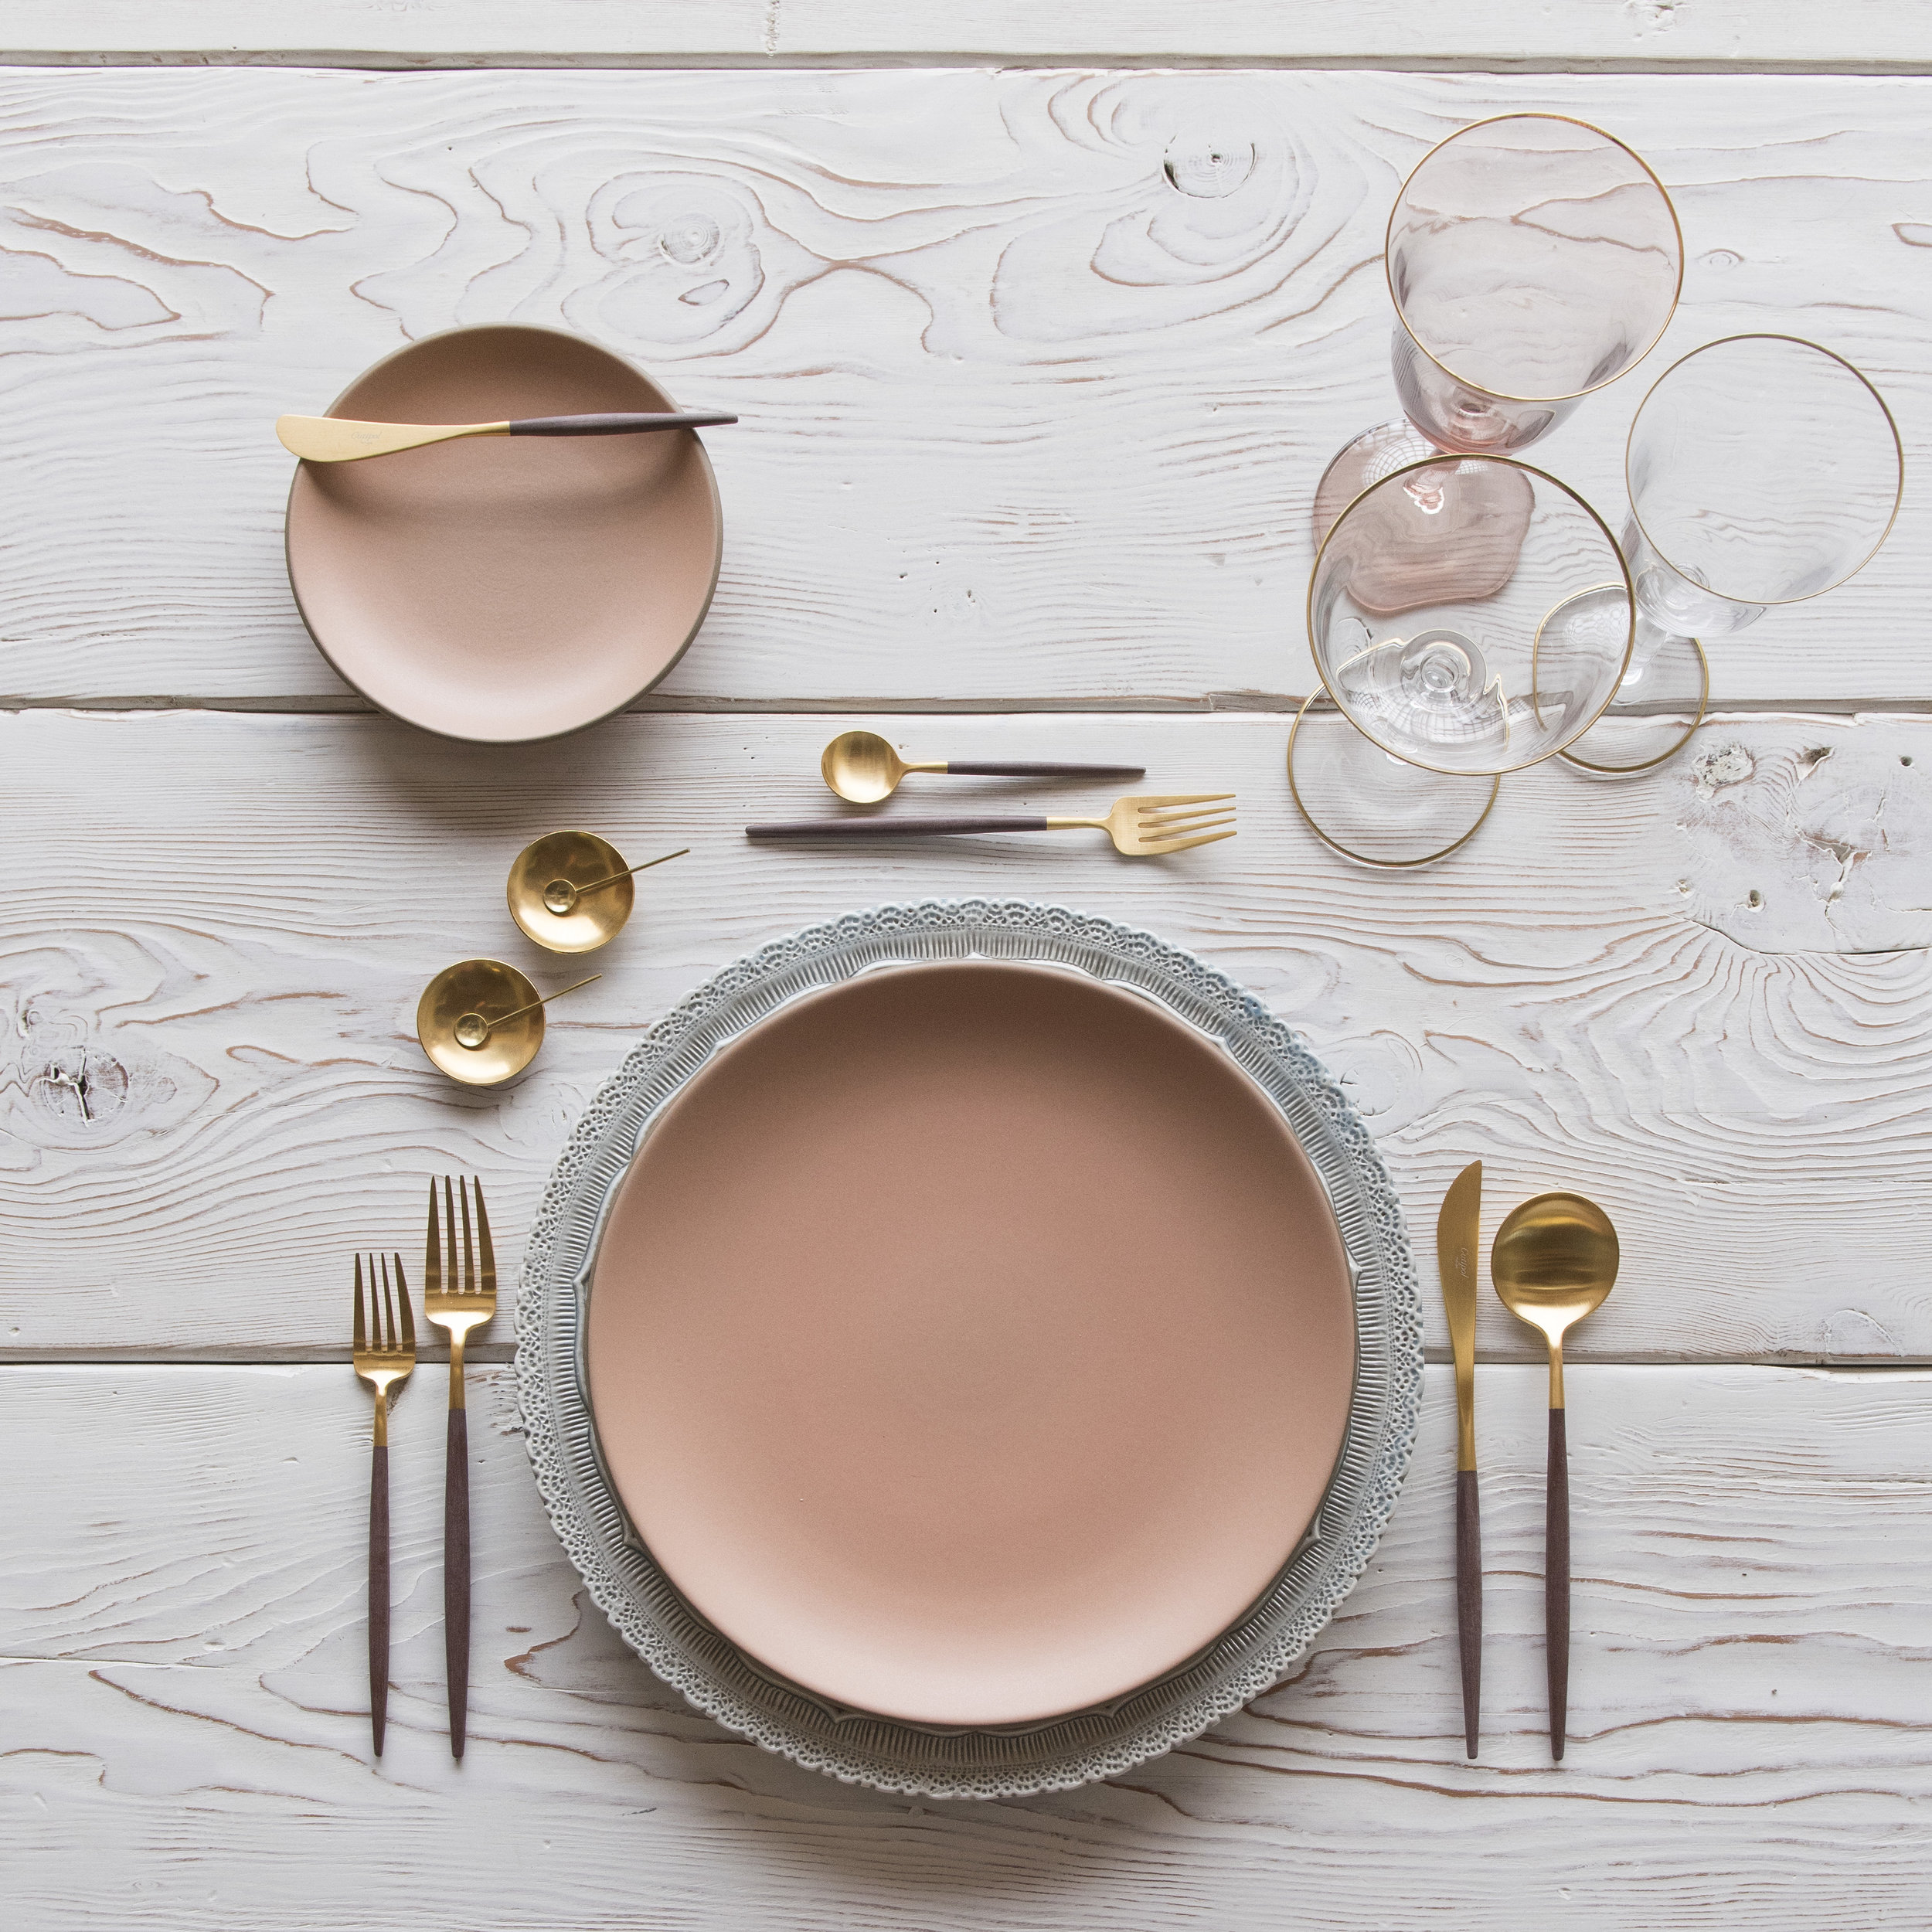 RENT: Lace Chargers in Dusty Blue + Custom Heath Ceramics in Sunrise + Goa Flatware in Brushed 24k Gold/Wood + Chloe 24k Gold Rimmed Stemware + Chloe 24k Gold Rimmed Goblet in Blush + 14k Gold Salt Cellars + Tiny Gold Spoons   SHOP: Goa Flatware in Brushed 24k Gold/Wood + Chloe 24k Gold Rimmed Stemware + 14k Gold Salt Cellars + Tiny Gold Spoons